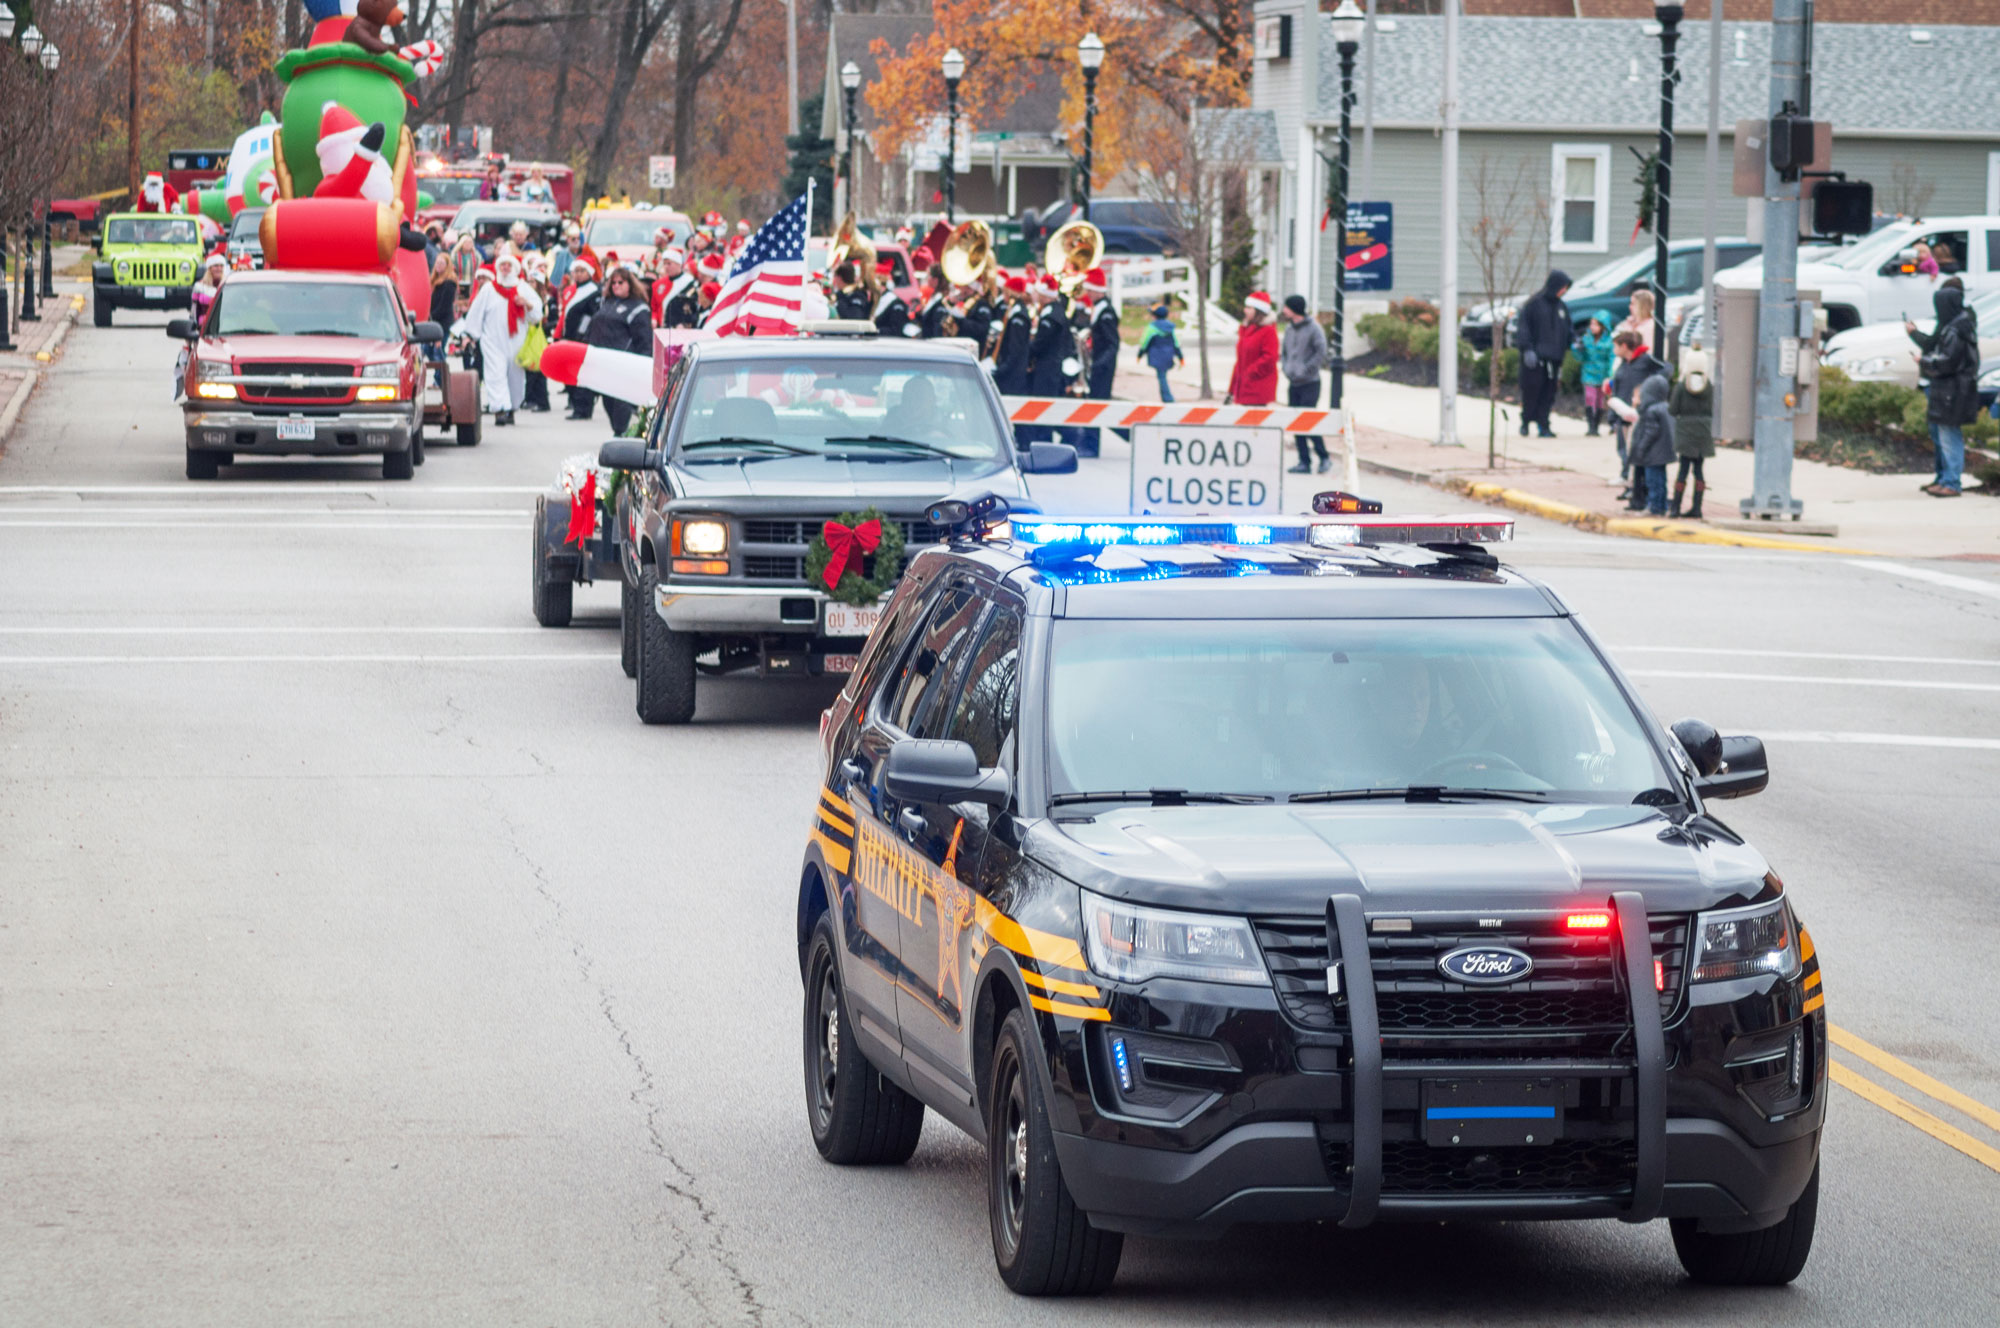 Christmas Festivities with Holiday Parade